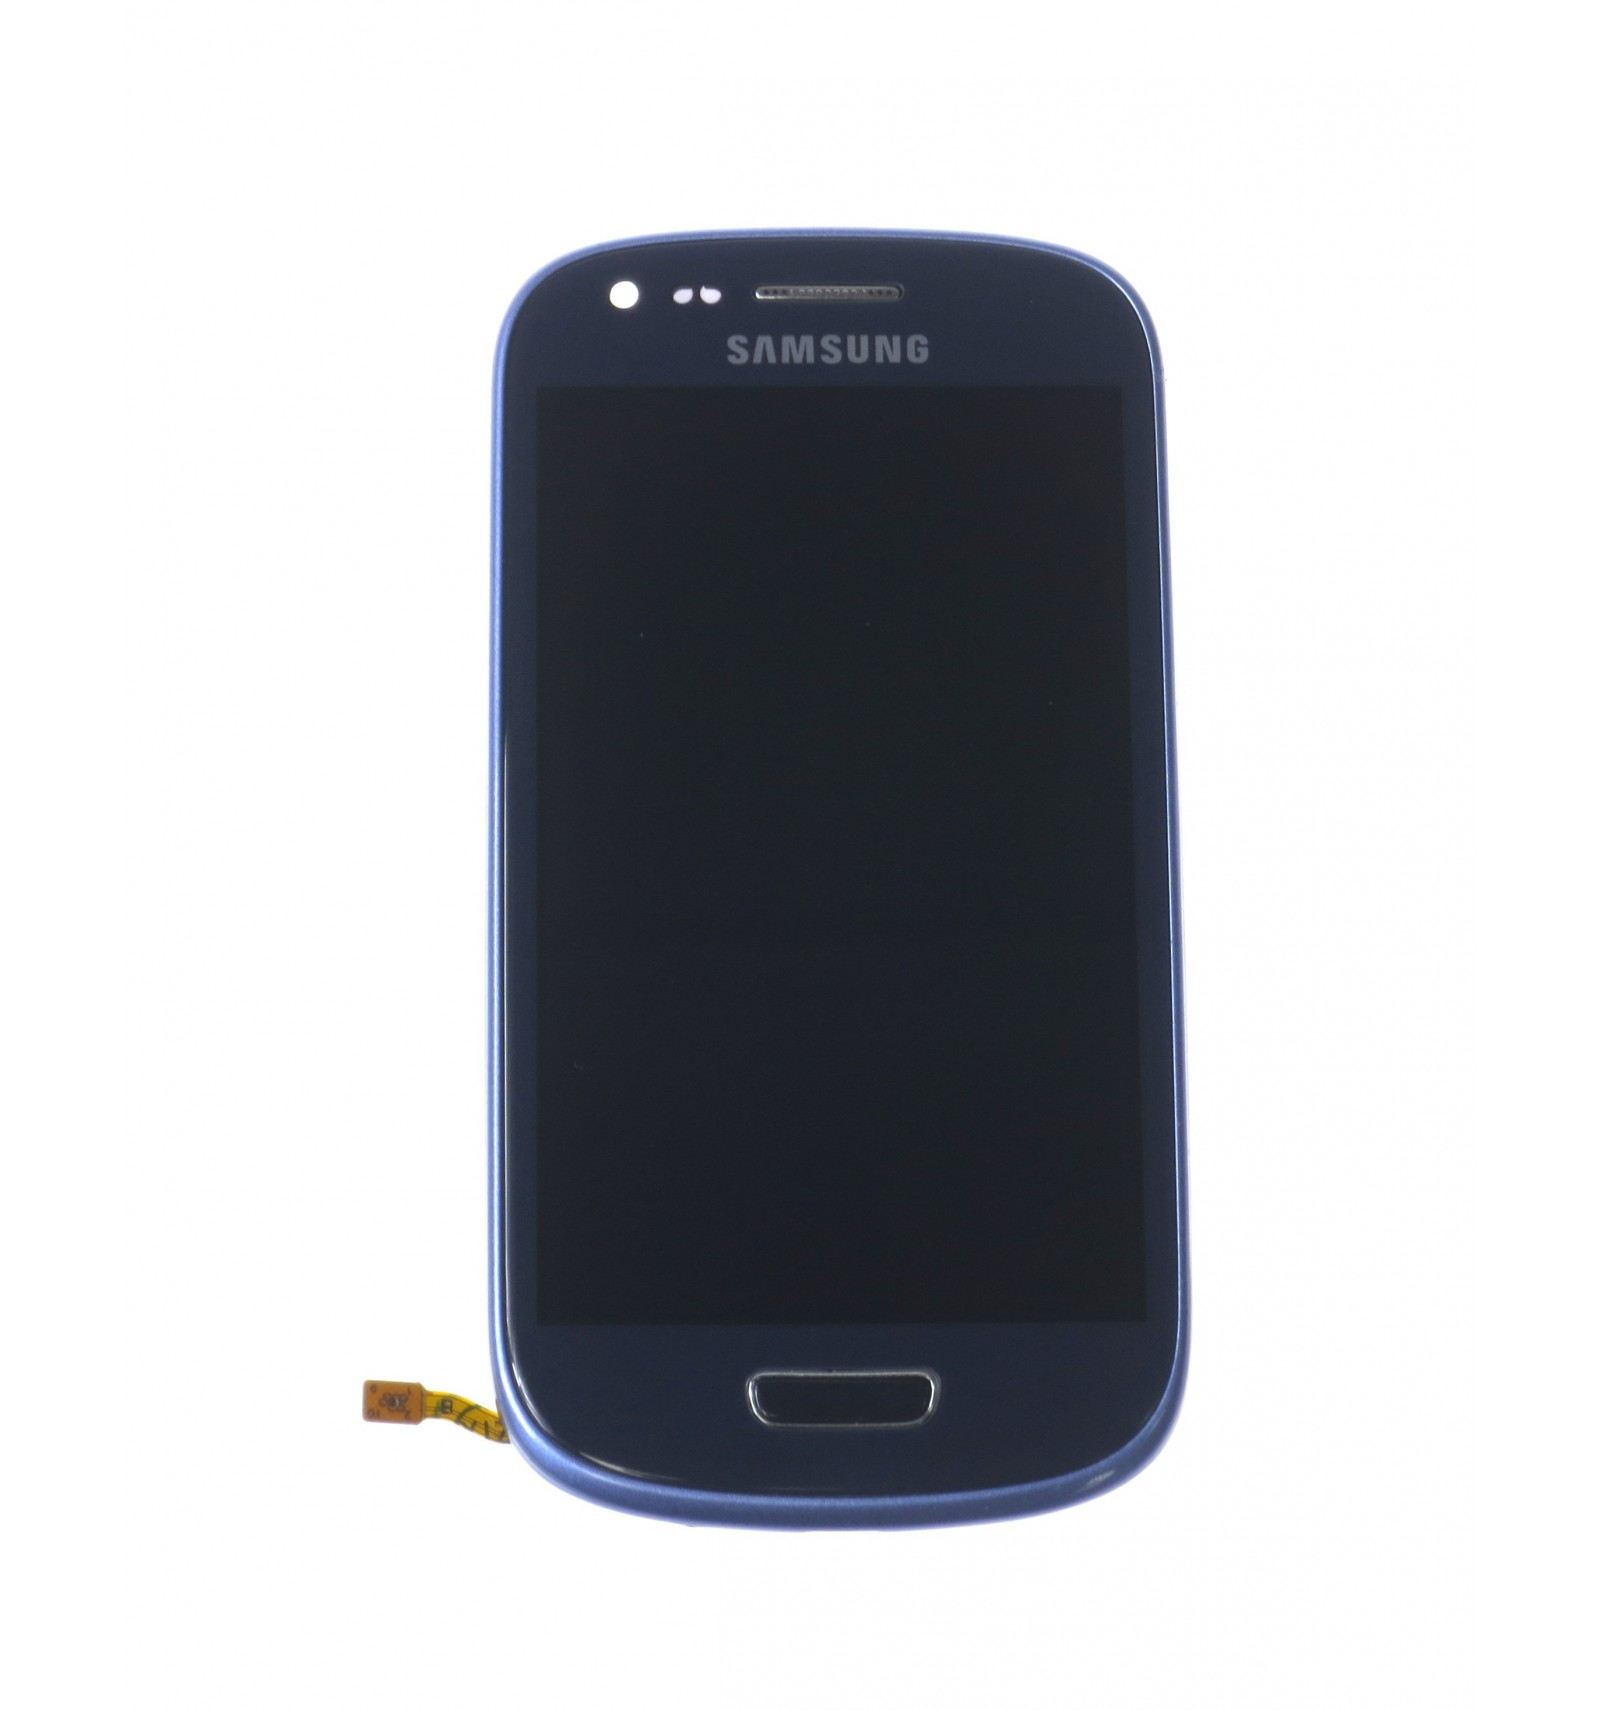 Simple Ping Application Written In Java On Samsung Galaxy S3 Mini